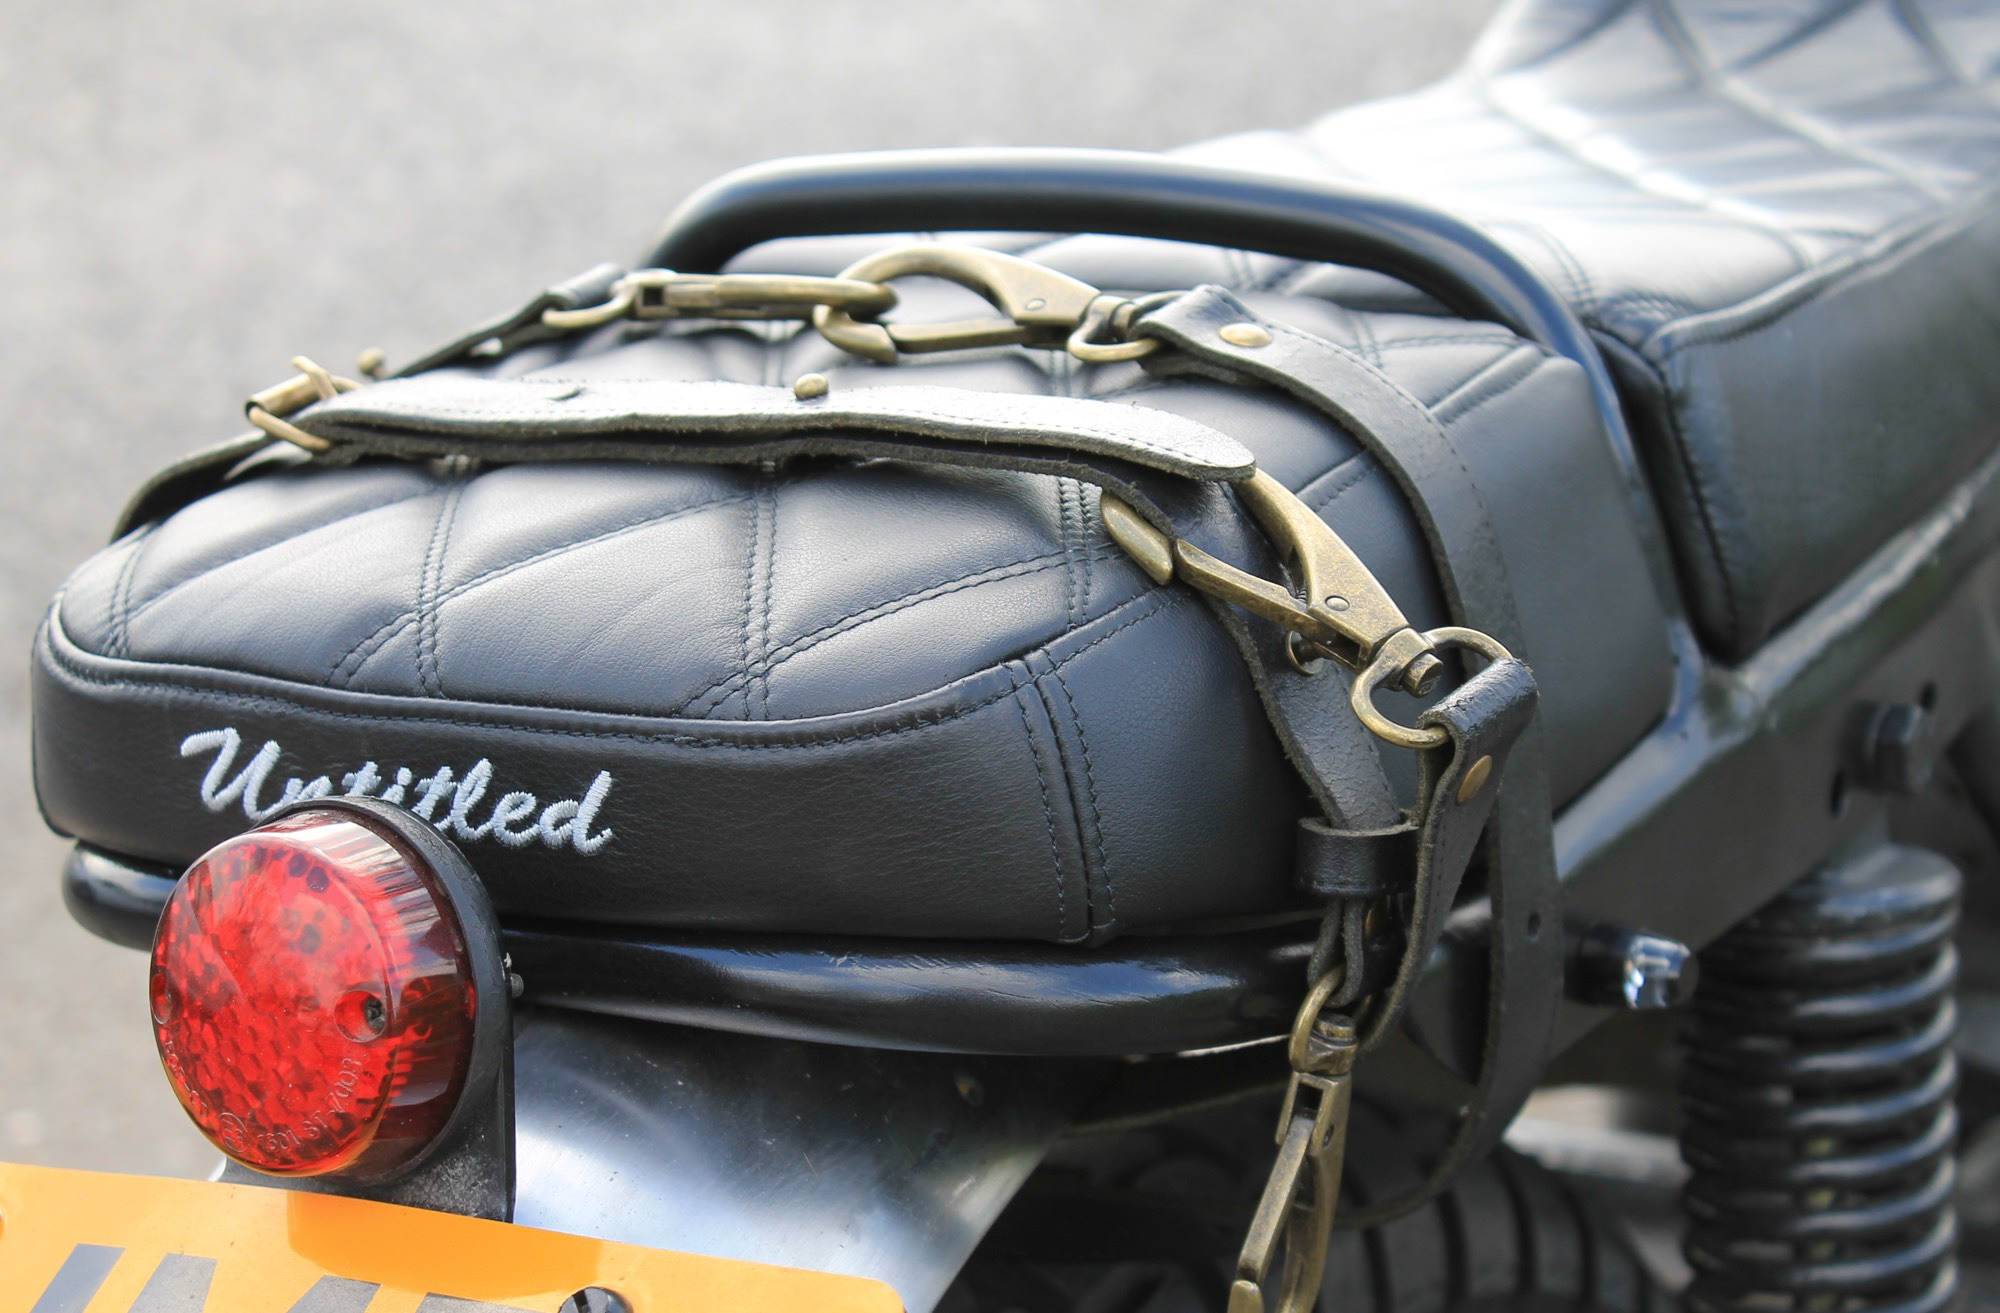 Custom Motorcycle Luggage Straps Motorcycle - King of Fuel